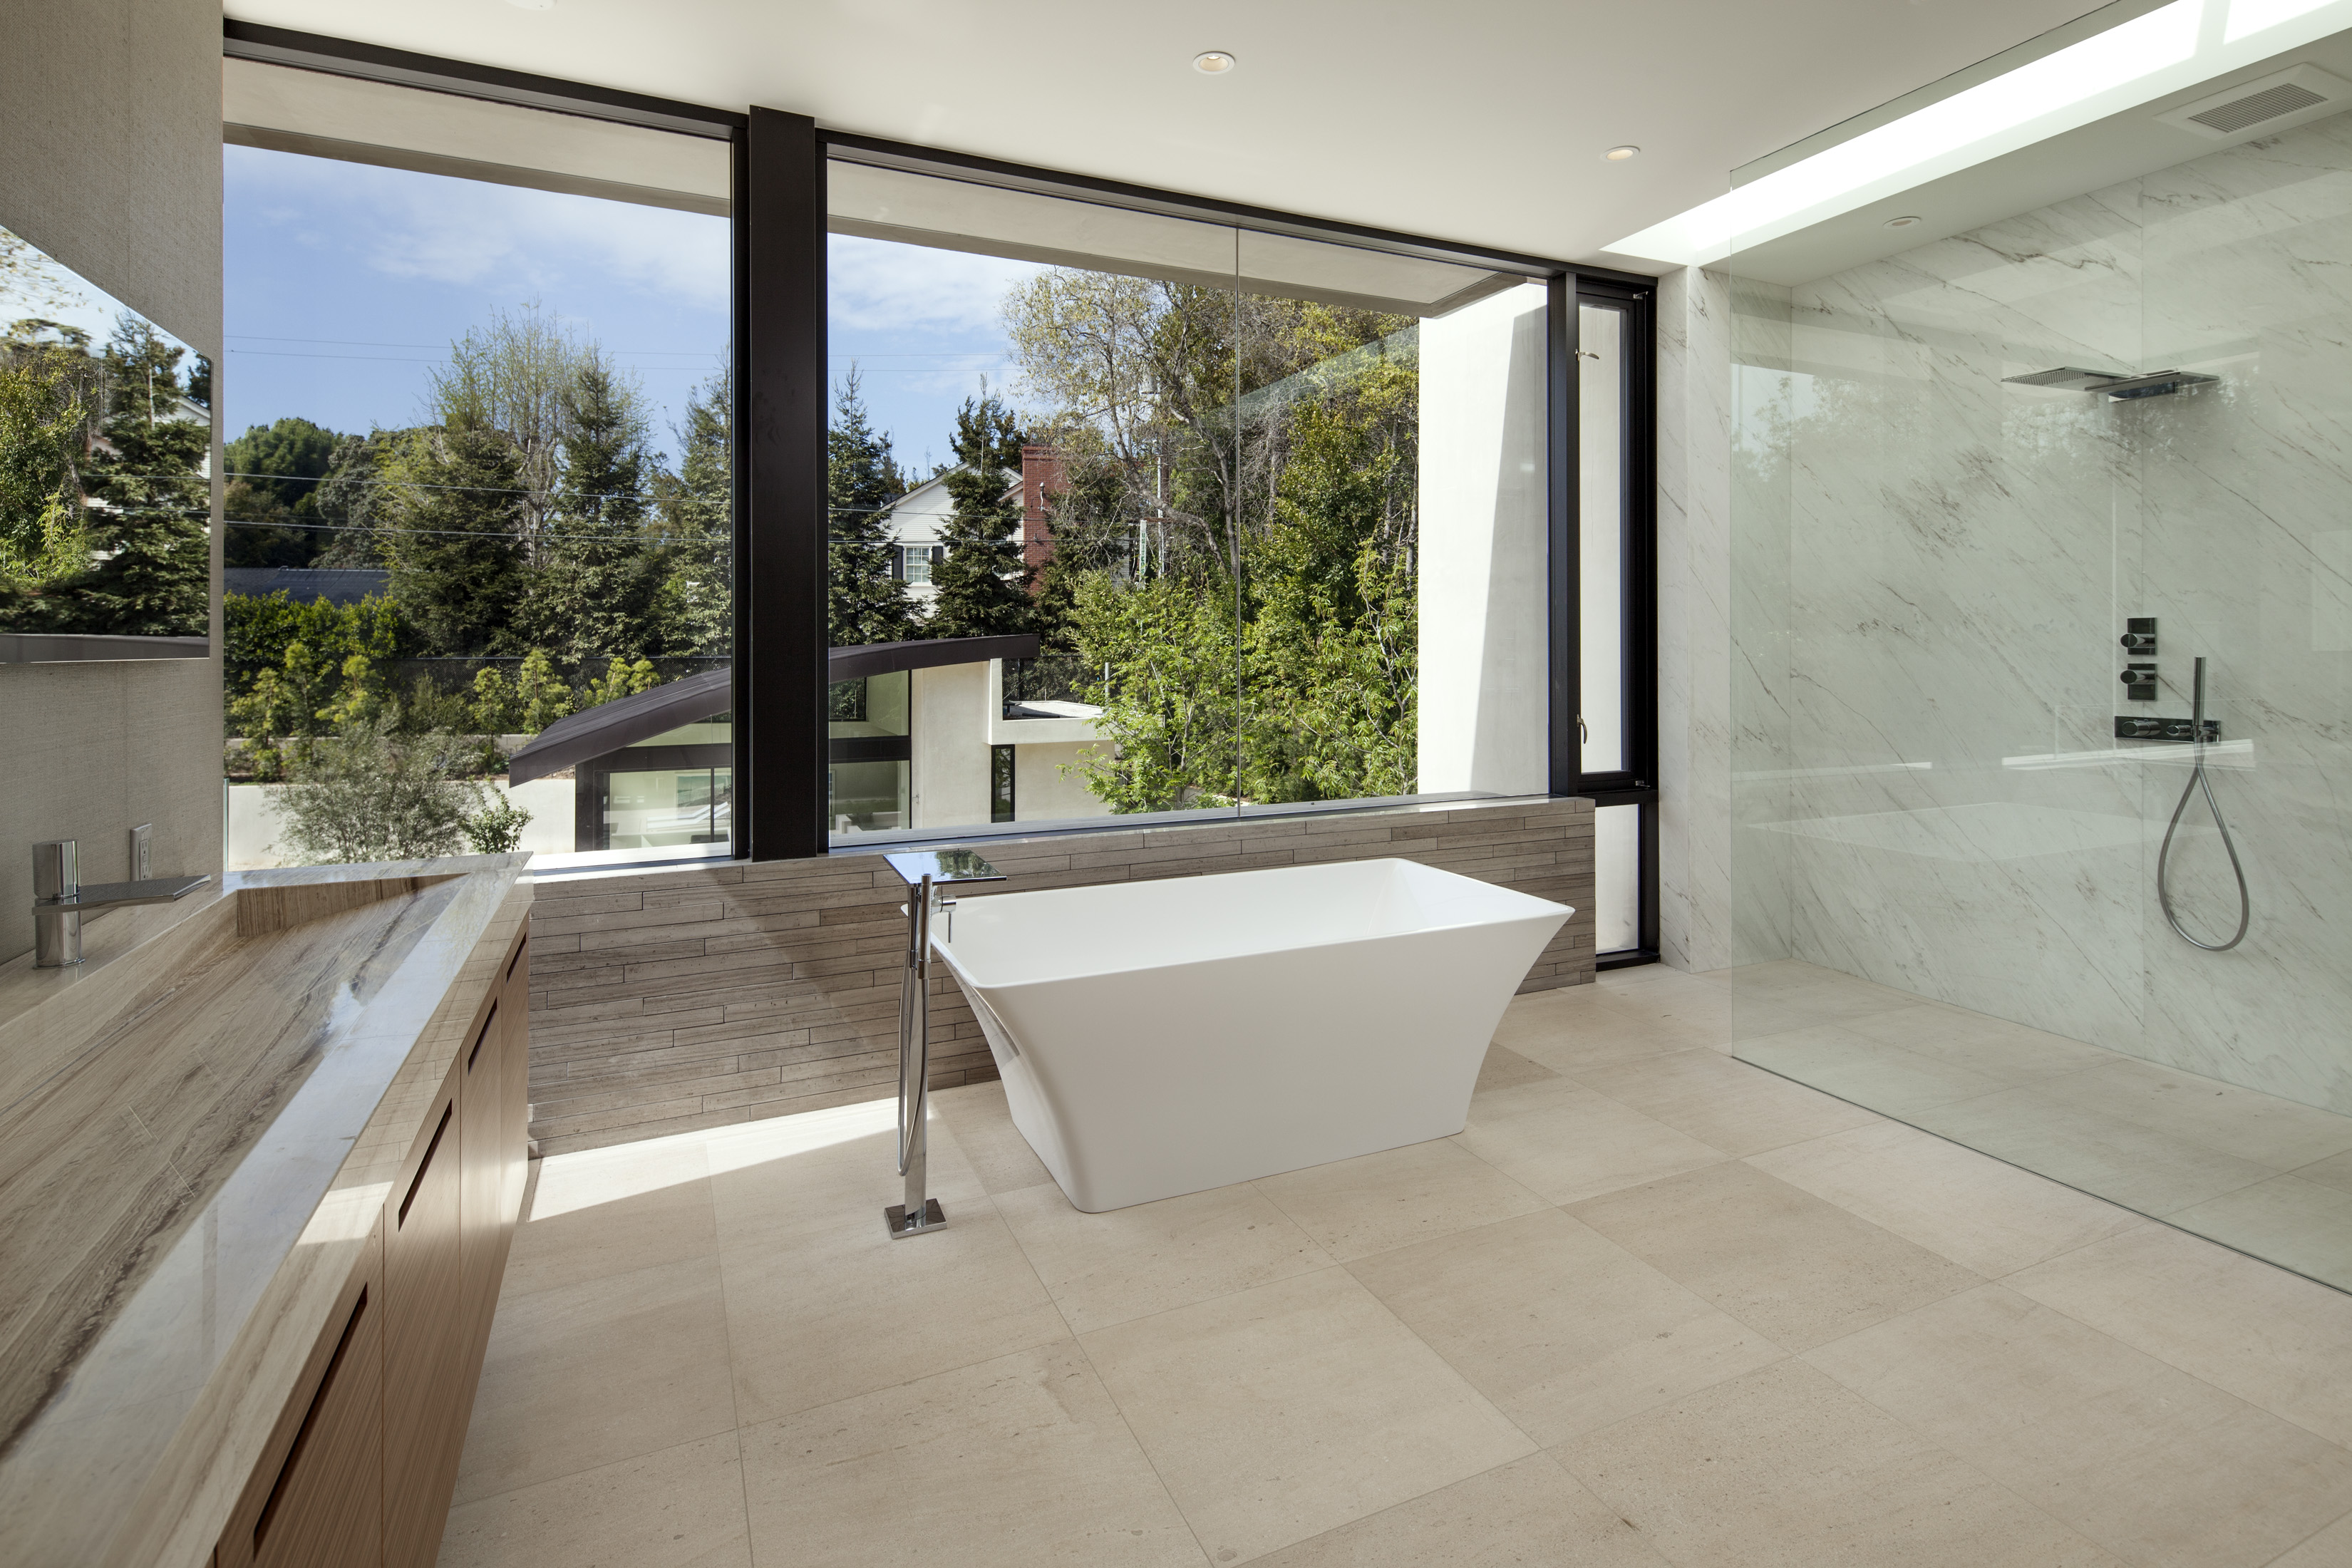 Primary bath contains a lengthy marble trough-style sink, white pedestal tub basking in natural light, and massive walk-in glass shower on right.